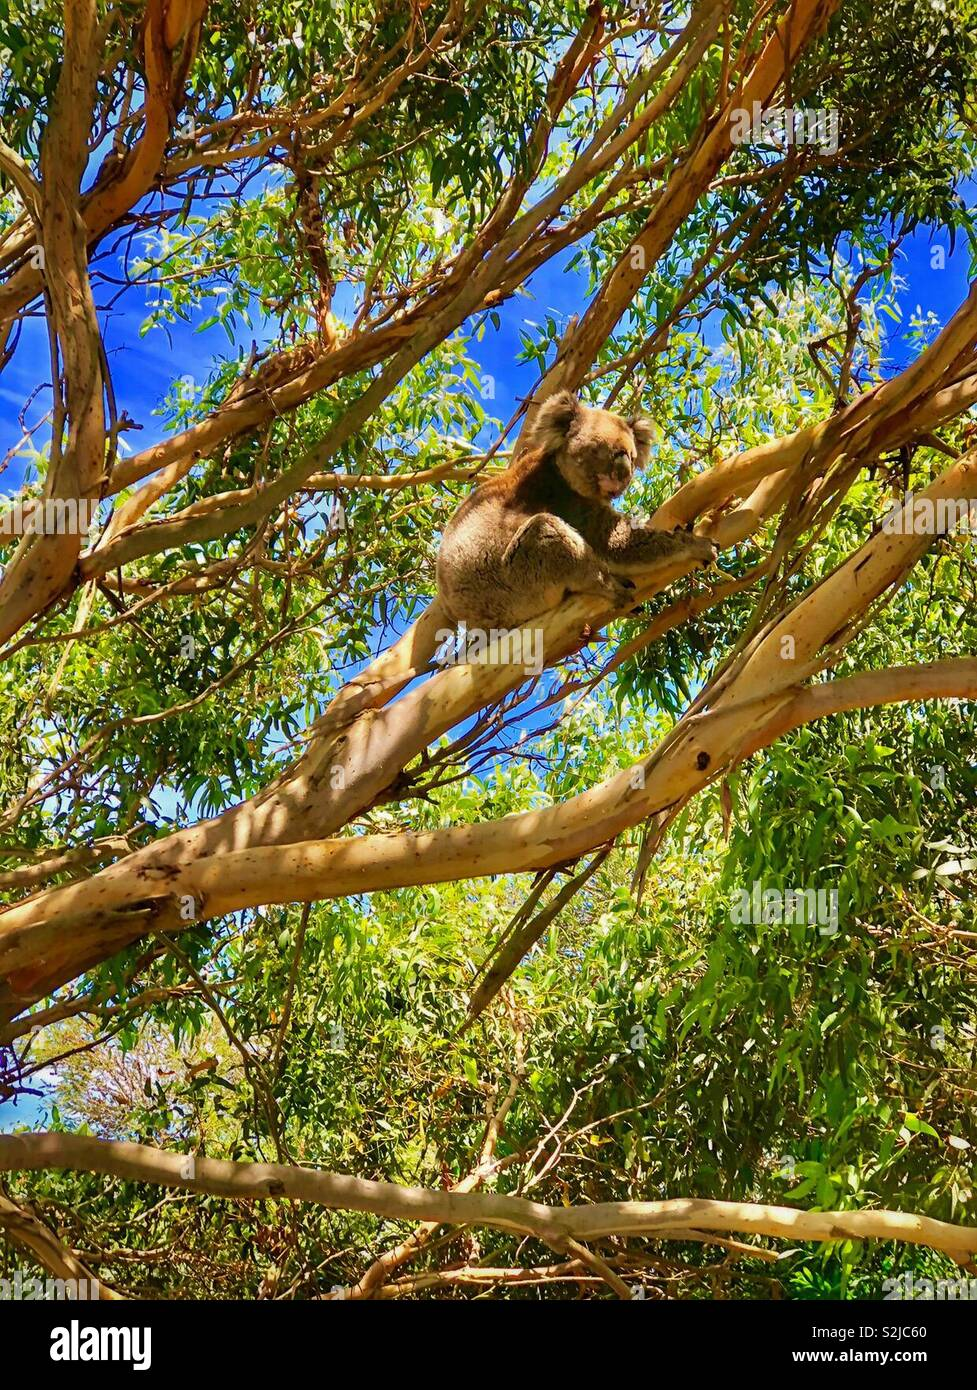 Koala in the tree - Stock Image